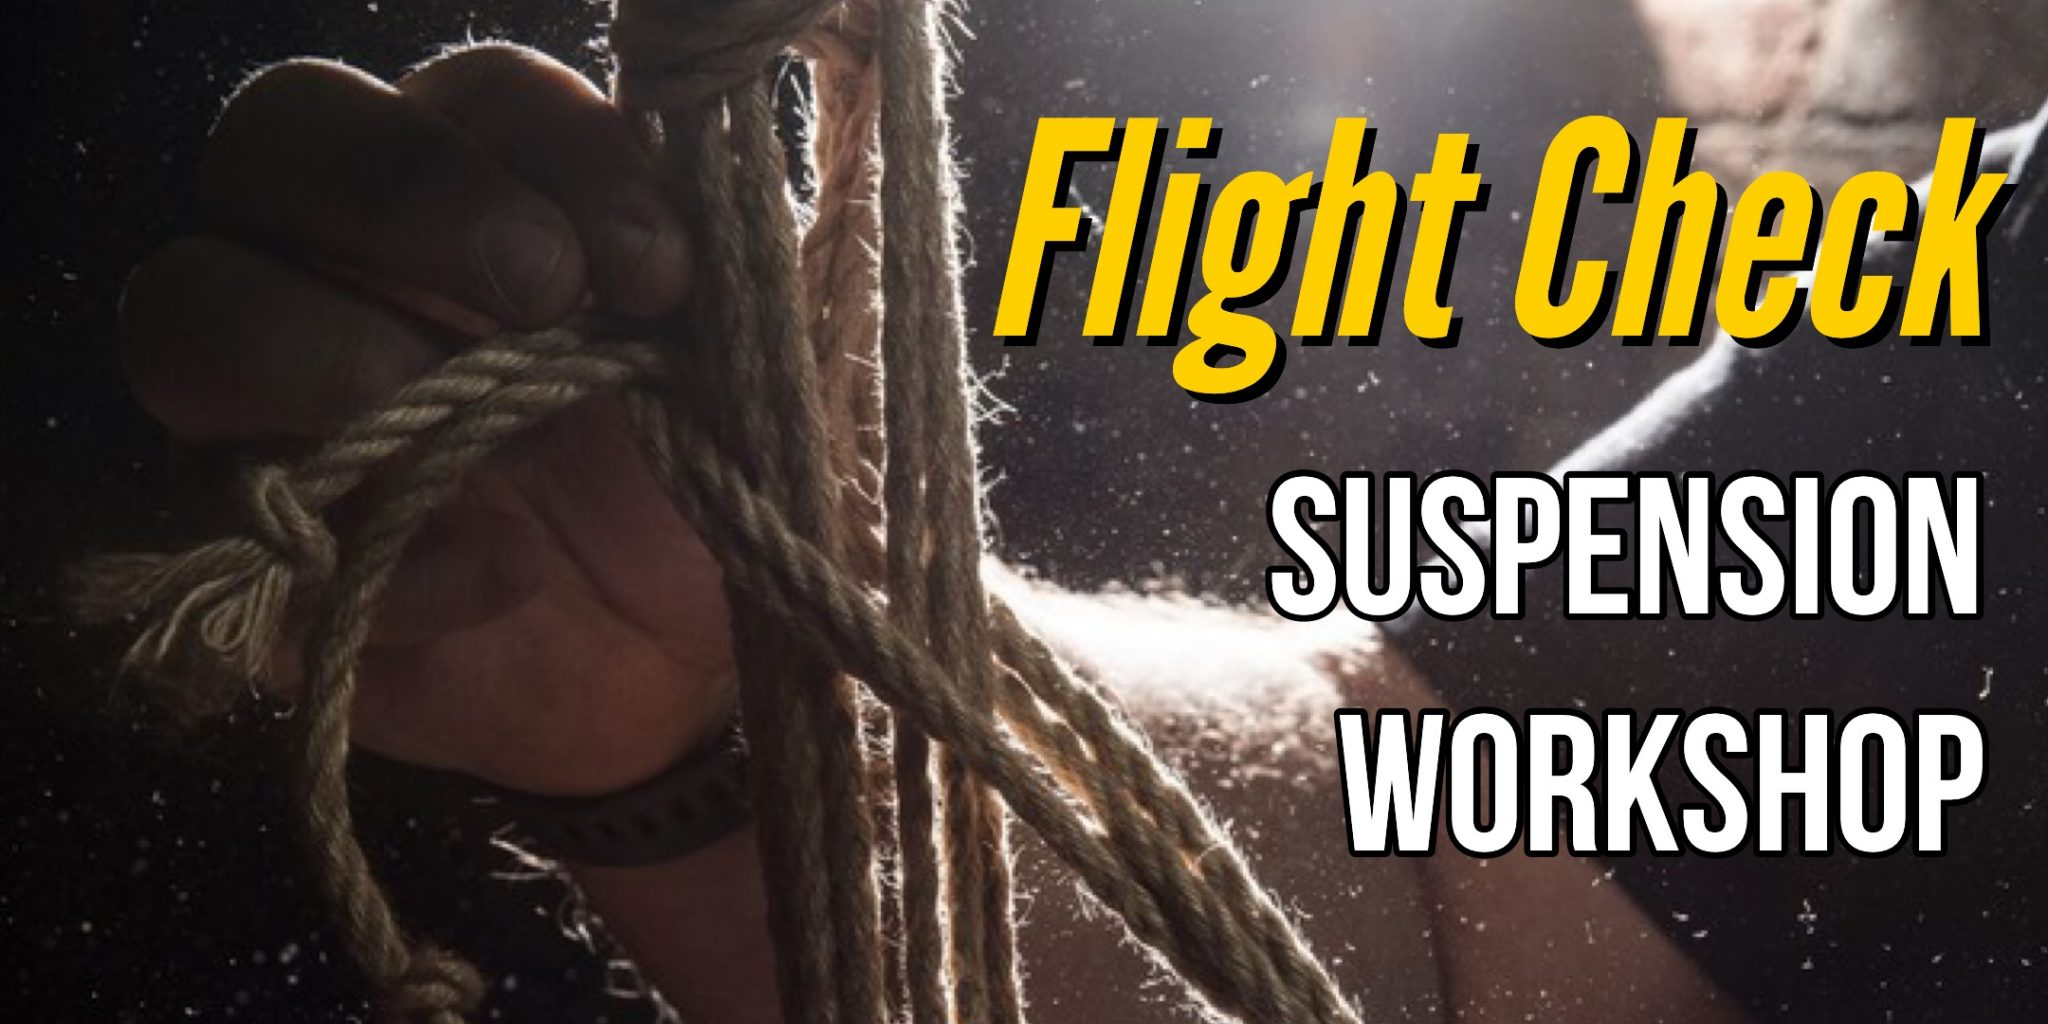 Flight Check Workshop – November Offering!